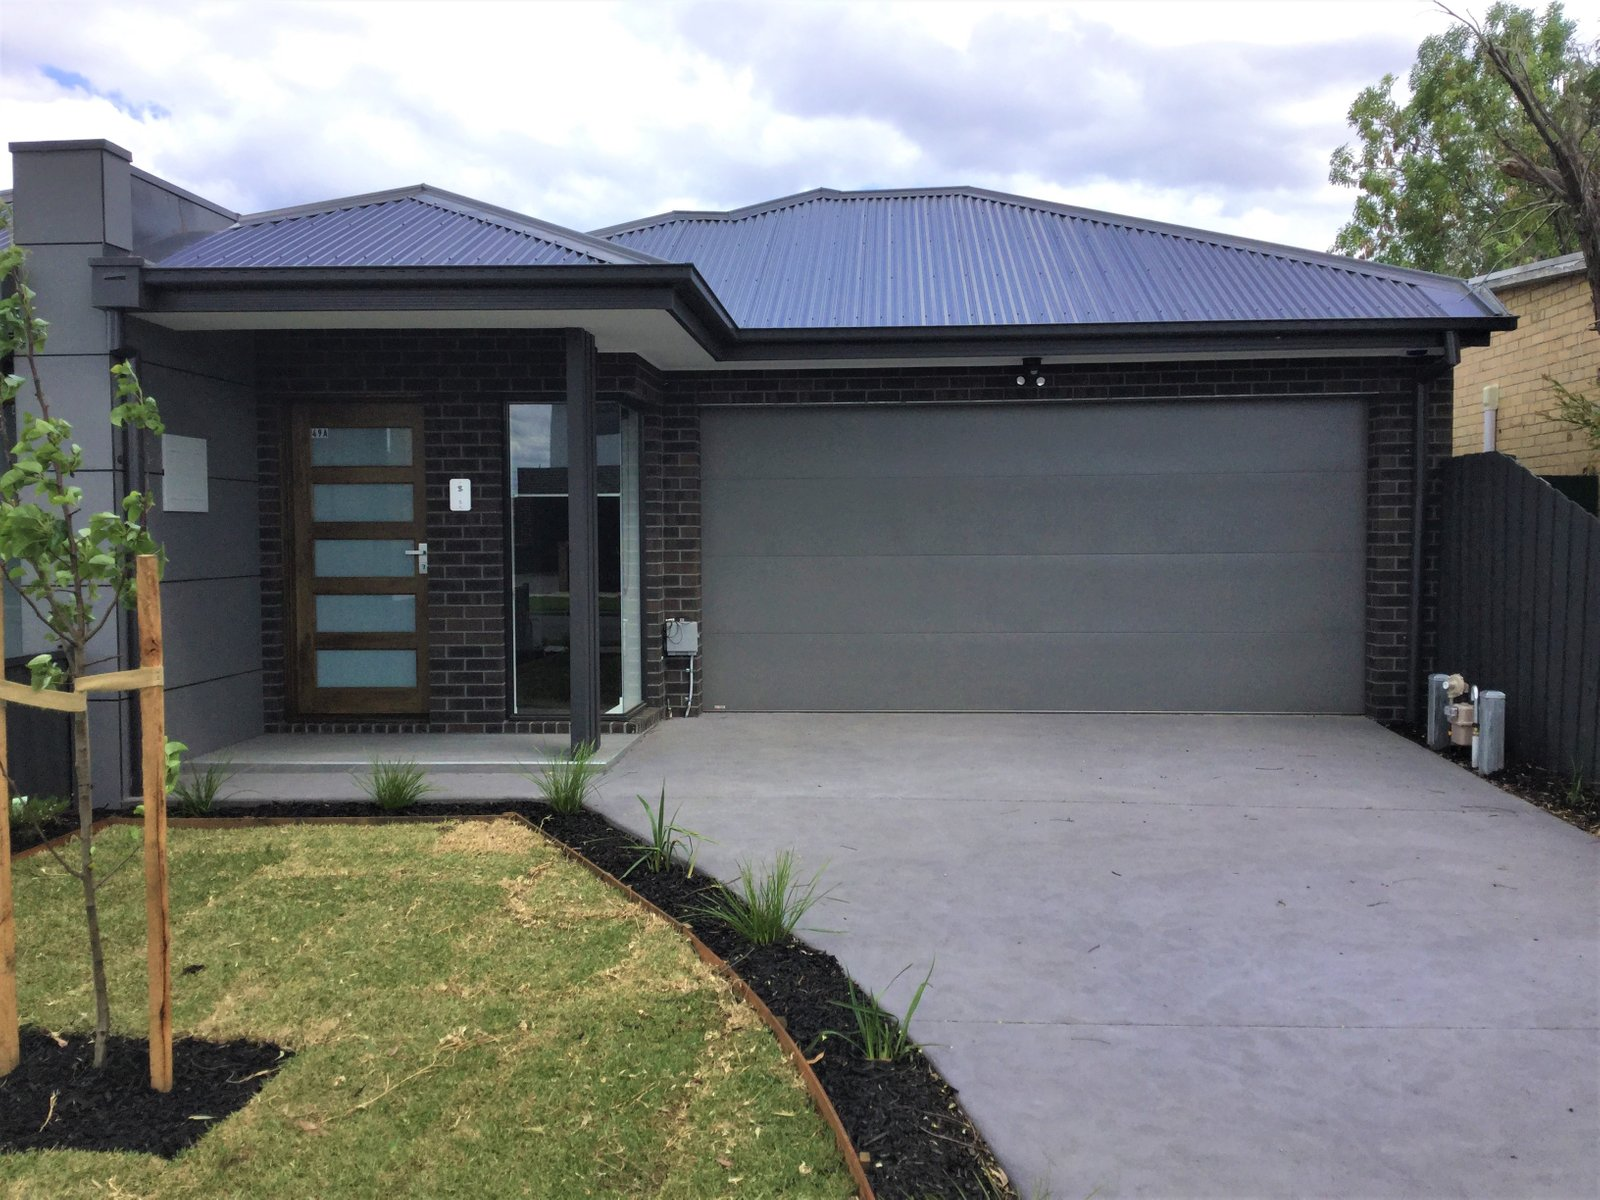 49A Marshall Road, Airport West, VIC, 3042 image 1